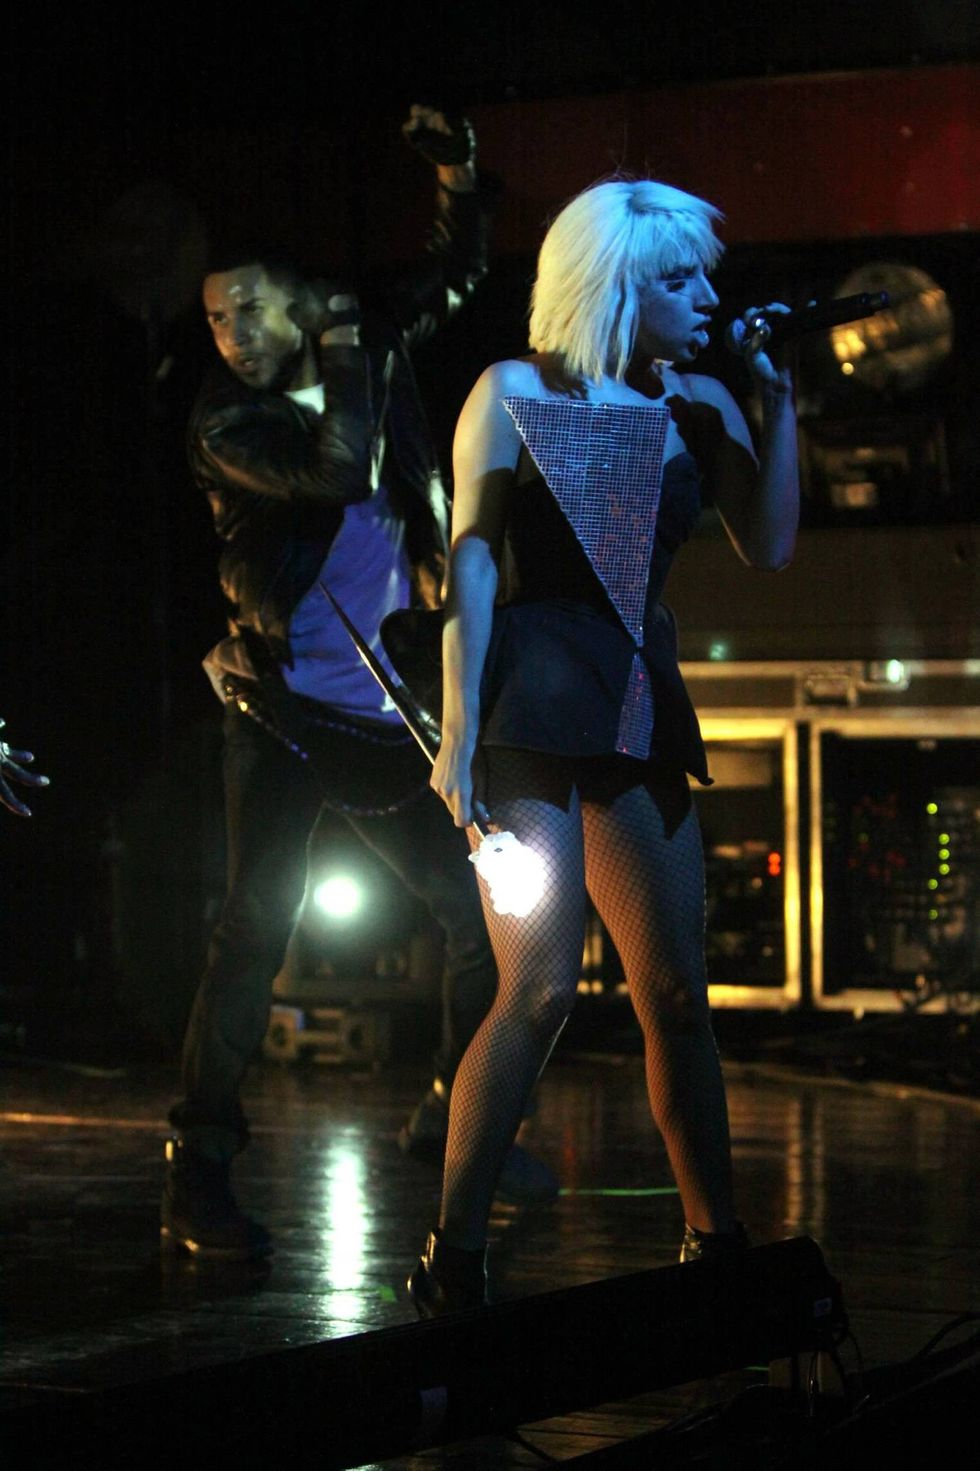 lady-gaga-performs-at-fort-lauderdale-01